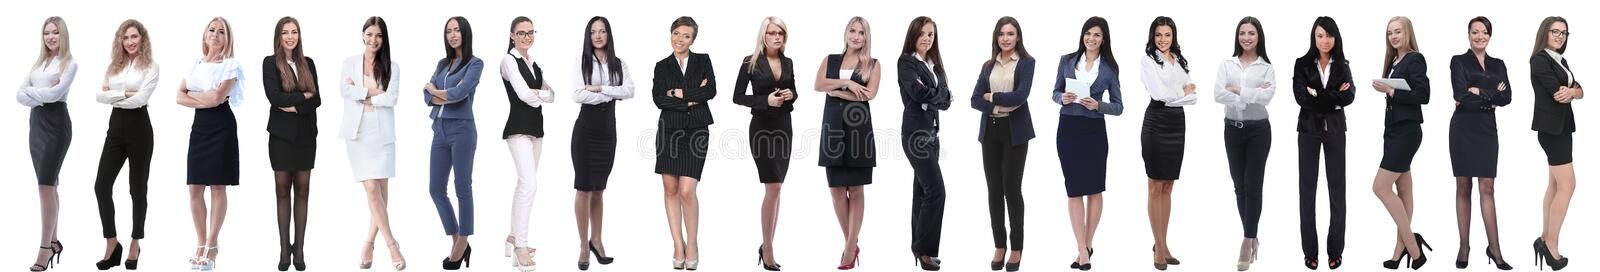 Collage of successful modern businesswoman. isolated on white stock photo